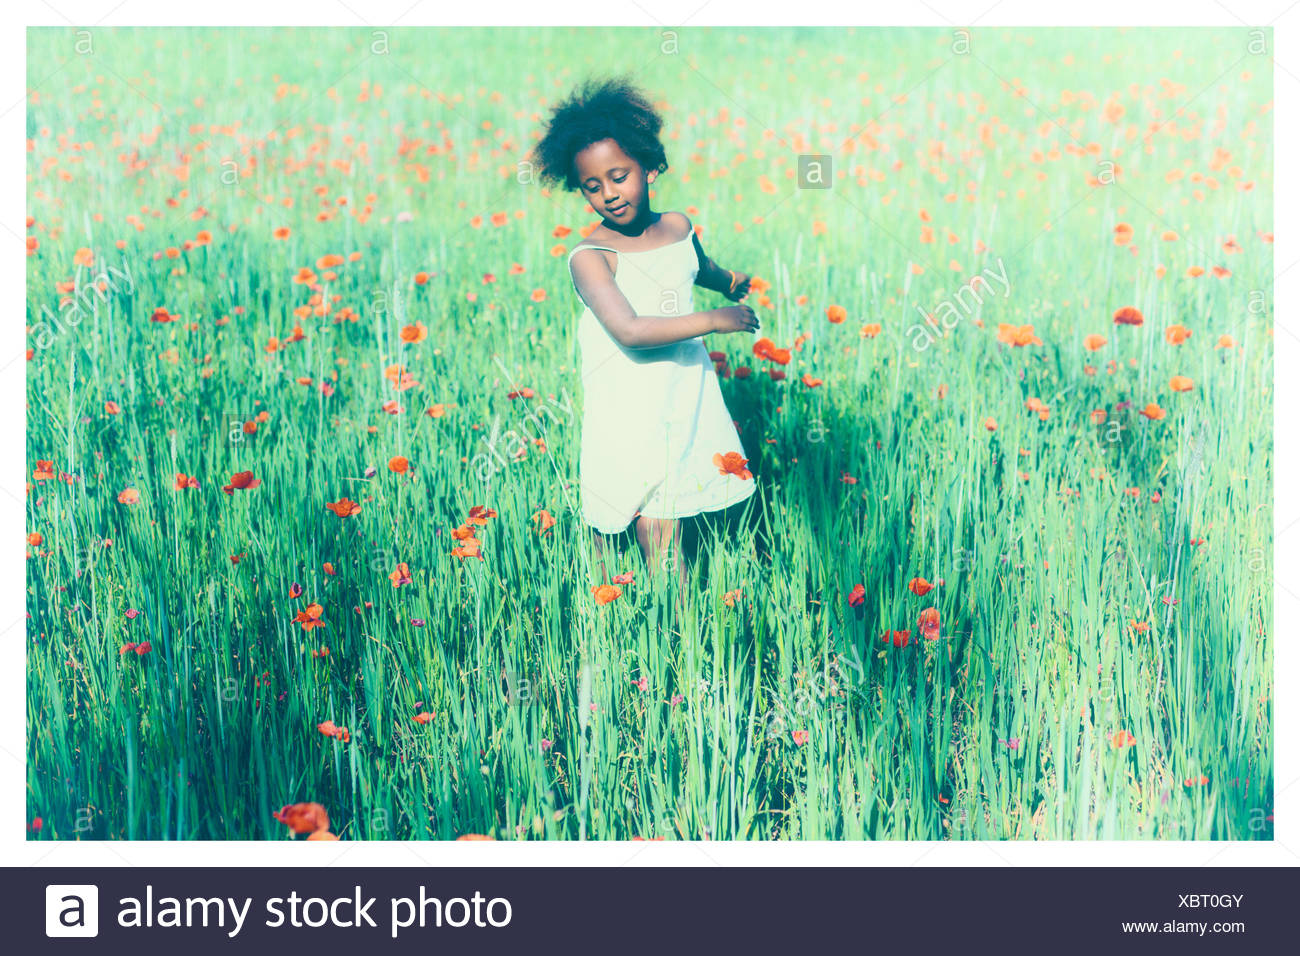 Girls standing in meadow with poppies - Stock Image